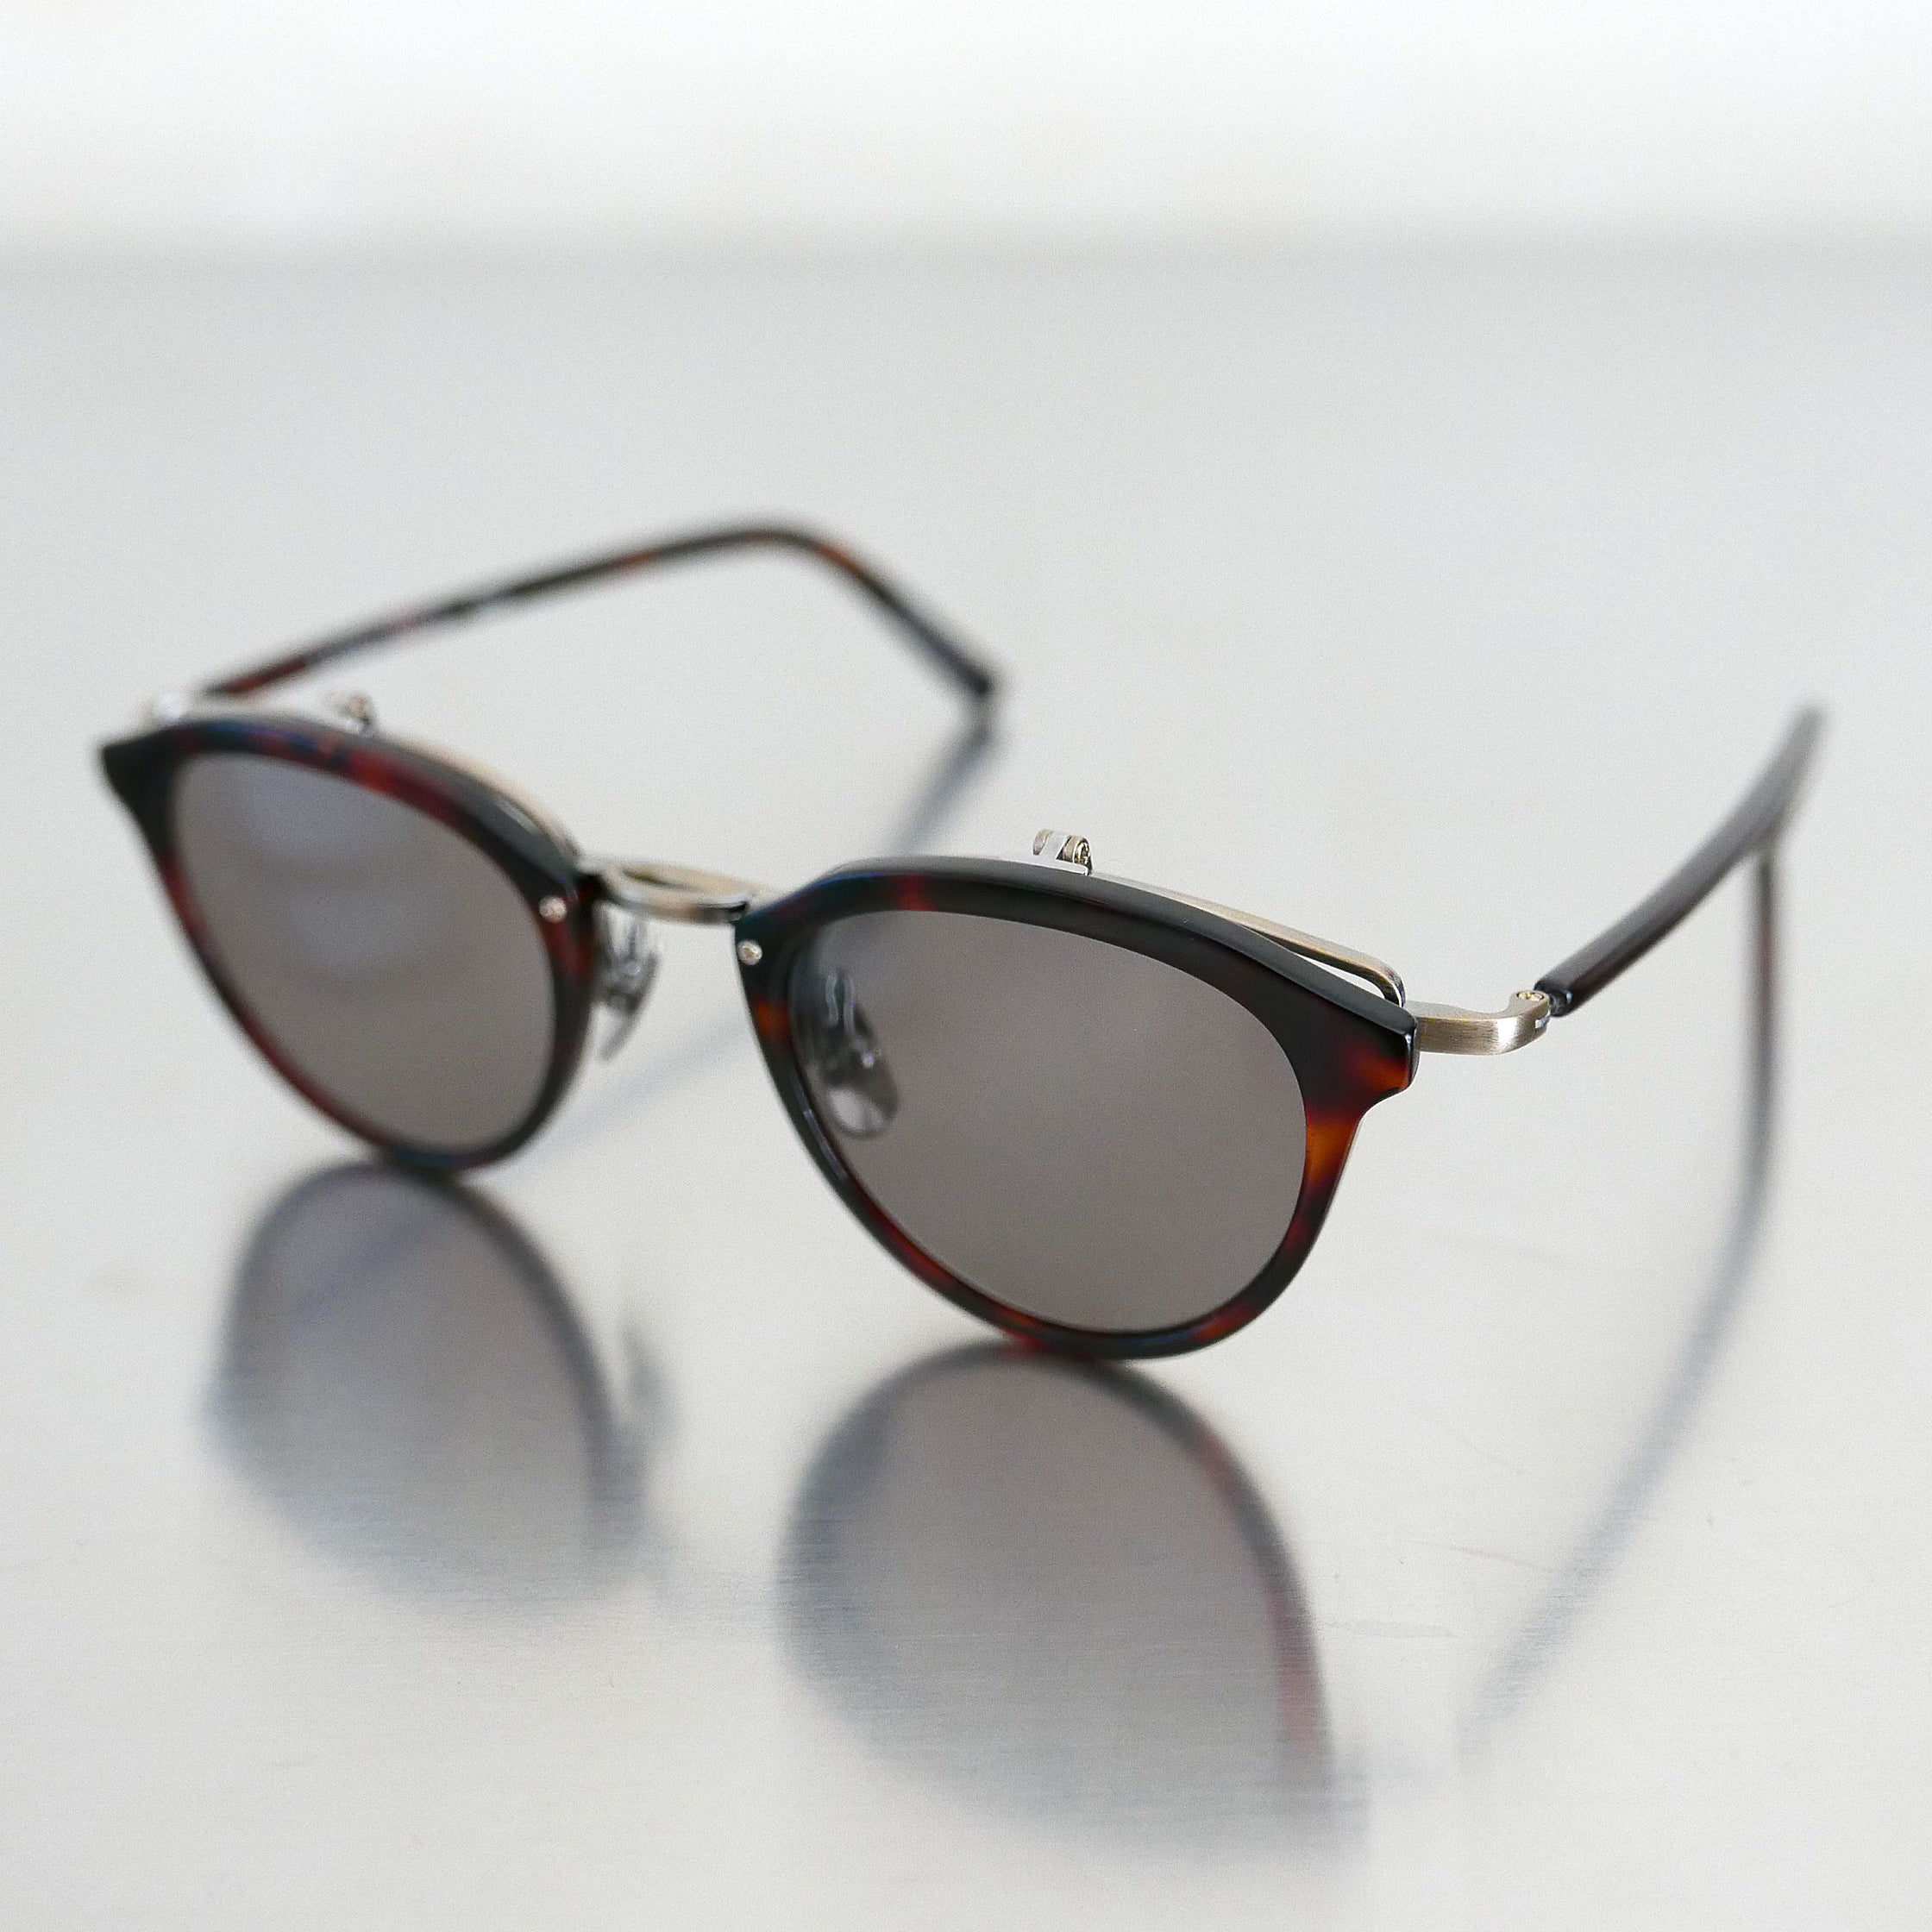 KJ-23 Sunglass in Red Demi